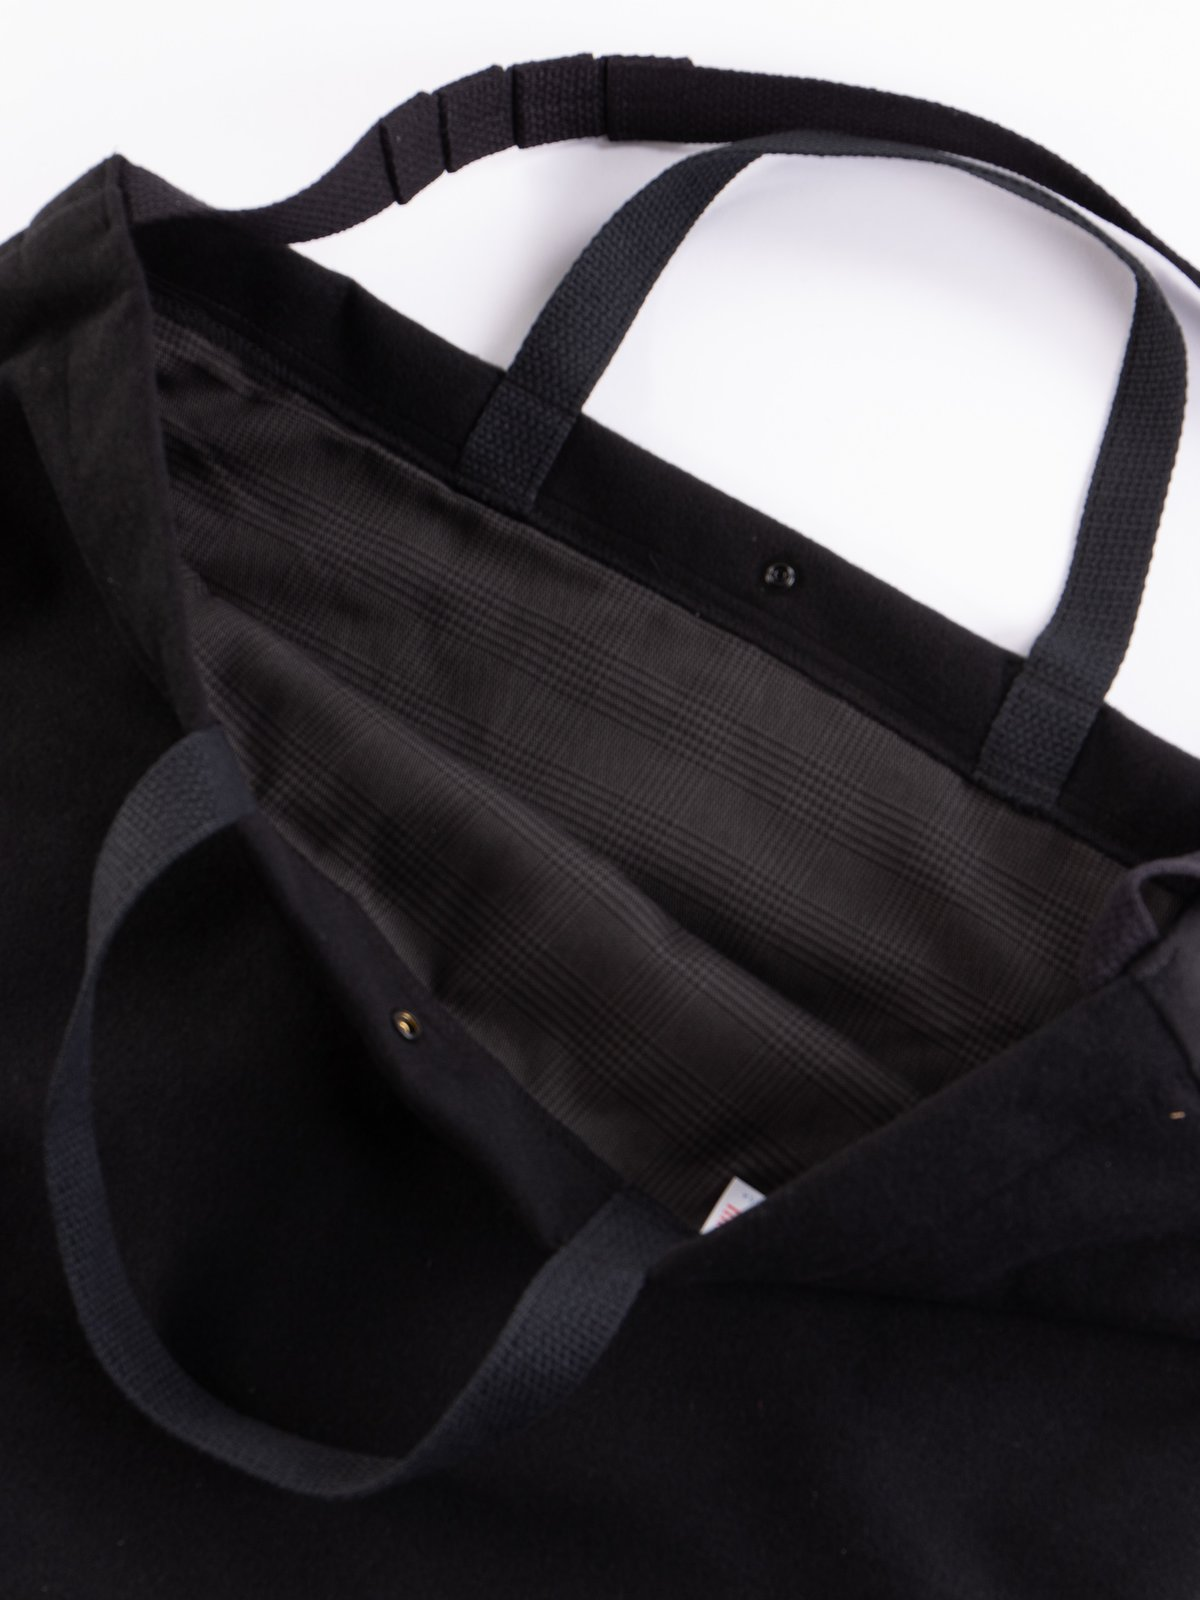 Black Polyester Fake Melton Carry All Tote - Image 3